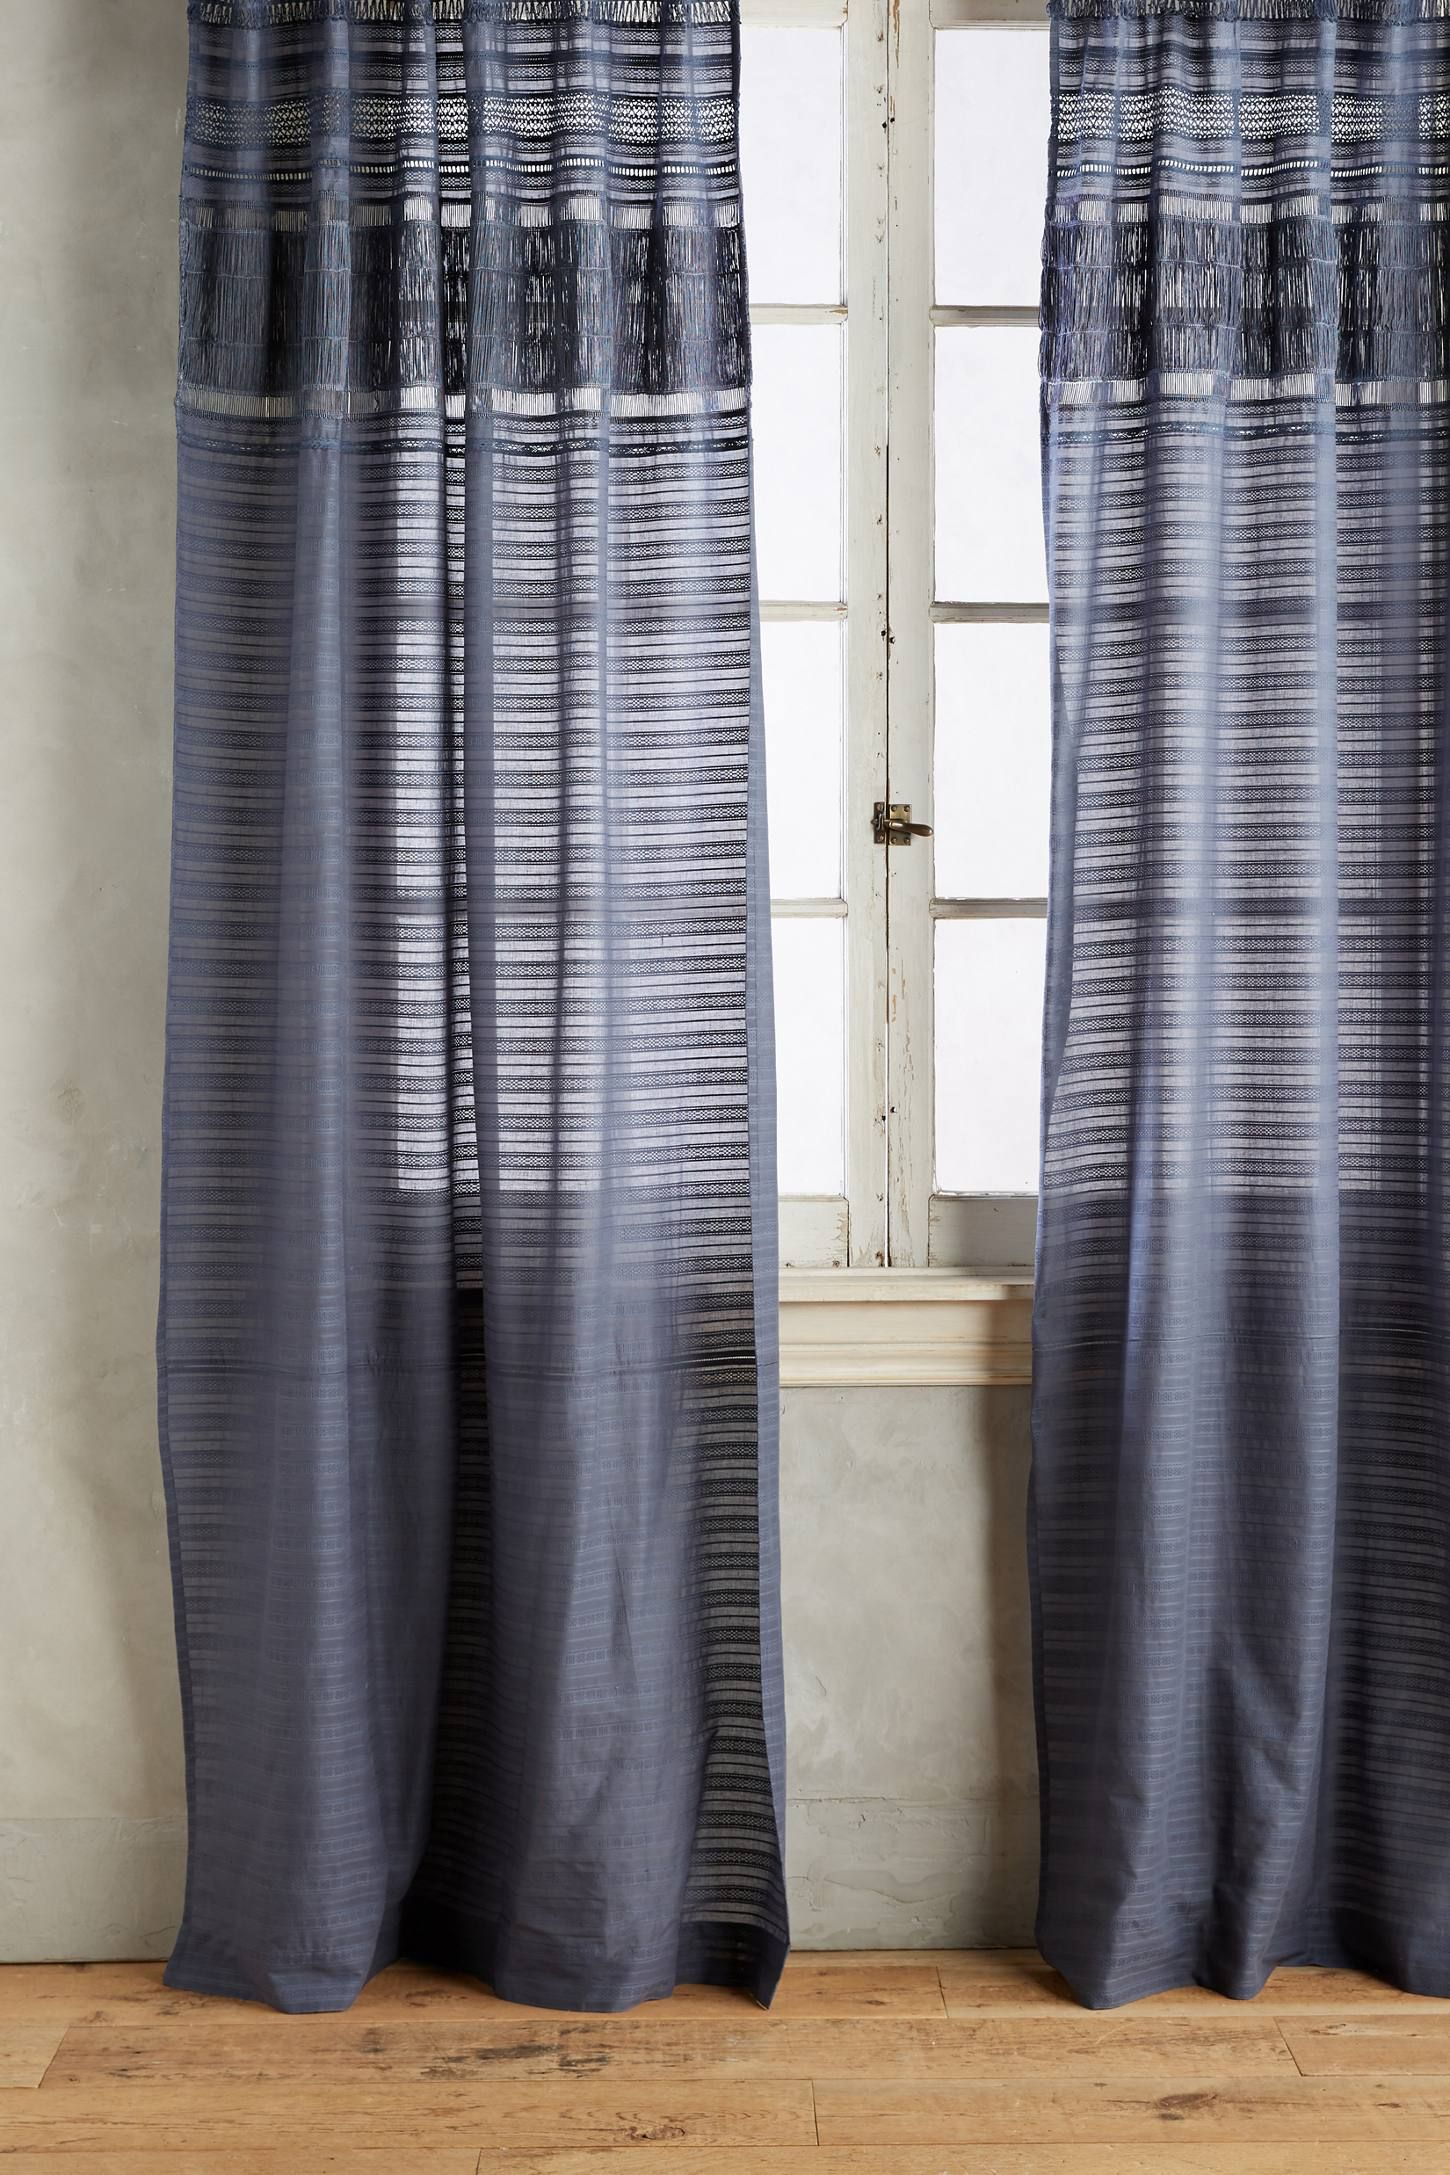 longhome curtain hometains depot curtains double catalog goods design full photos drapes of rods and jcpenney home size store depotcurtains at singular tension amazon blindsattain